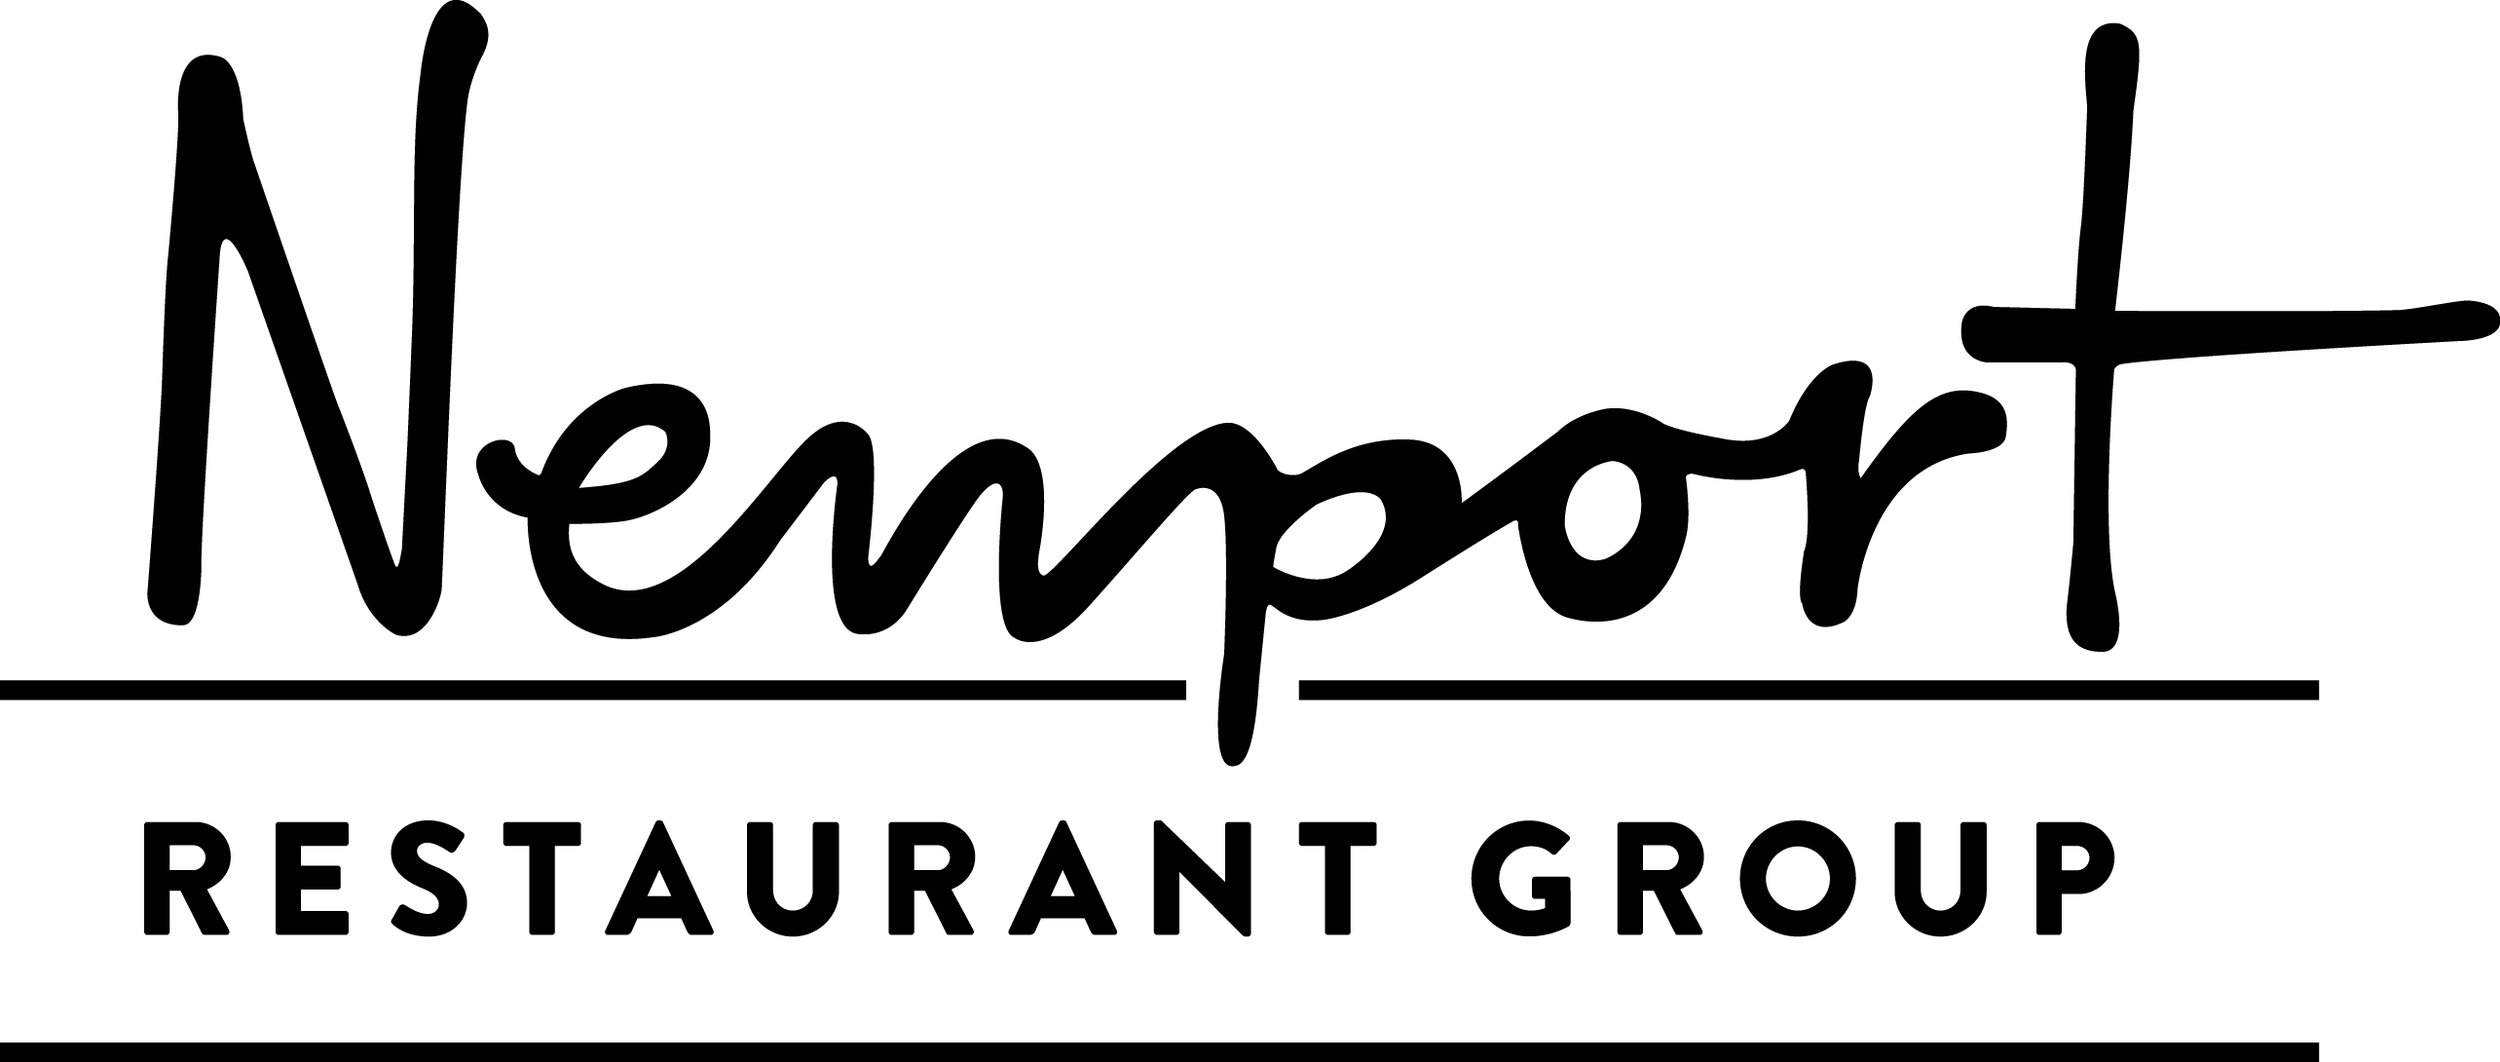 Newport Restaurant Group